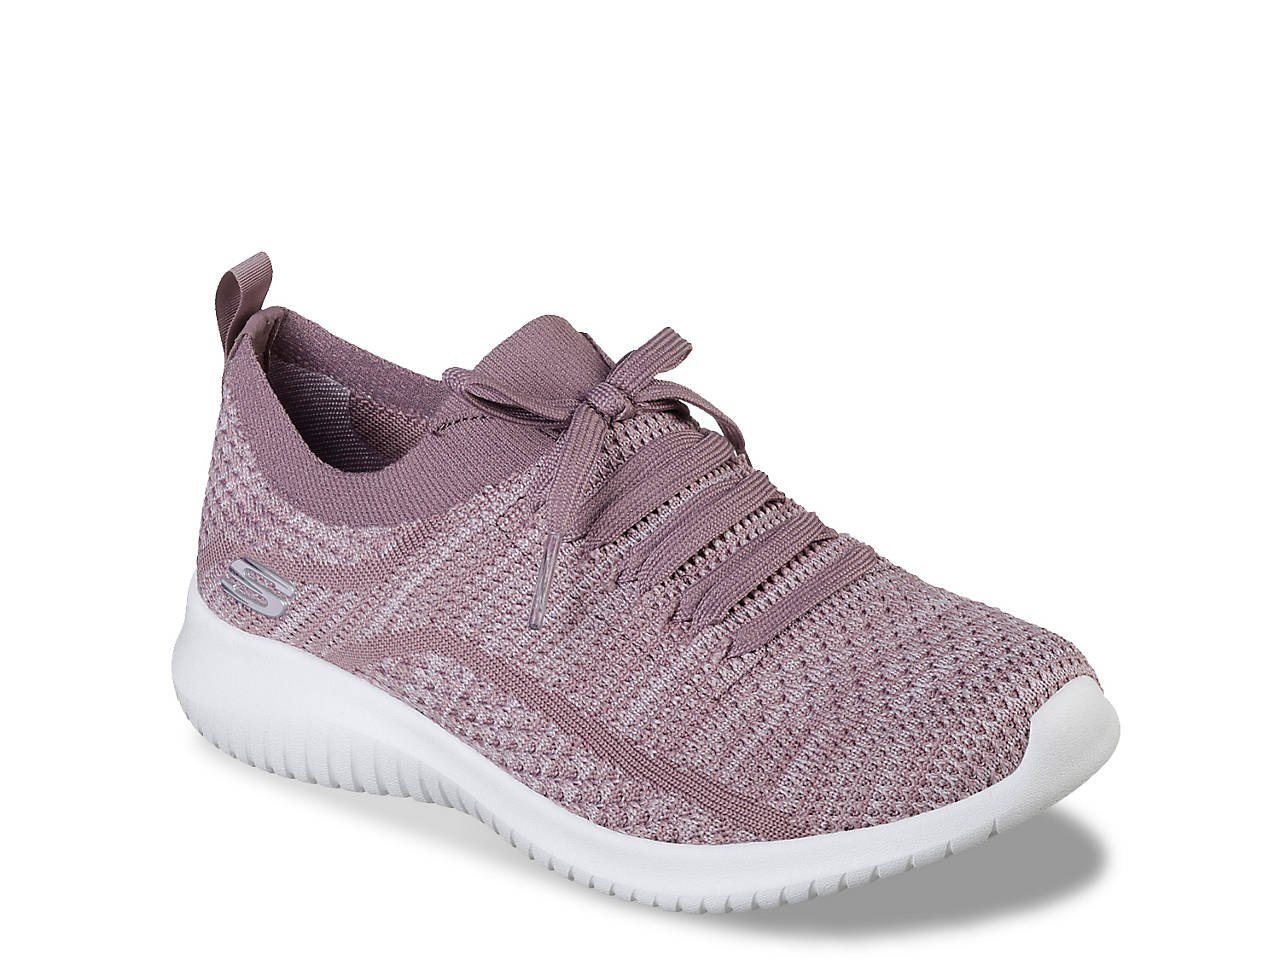 Skechers Ultra Flex Statements Sneaker - Women s Women s Shoes  1eb19e887